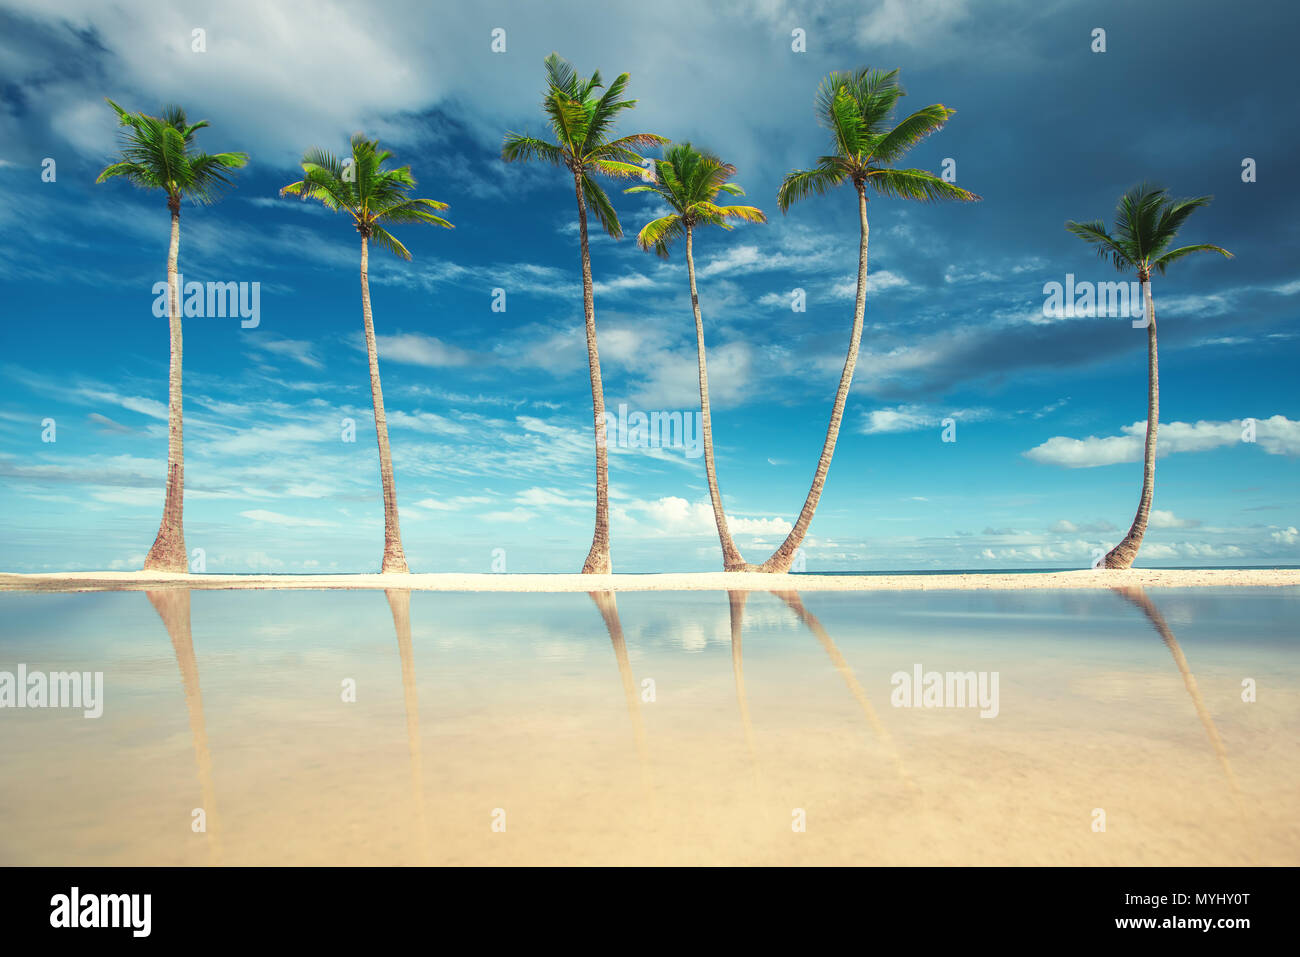 Coconut Palm trees on white sandy beach in Punta Cana, Dominican Republic. - Stock Image